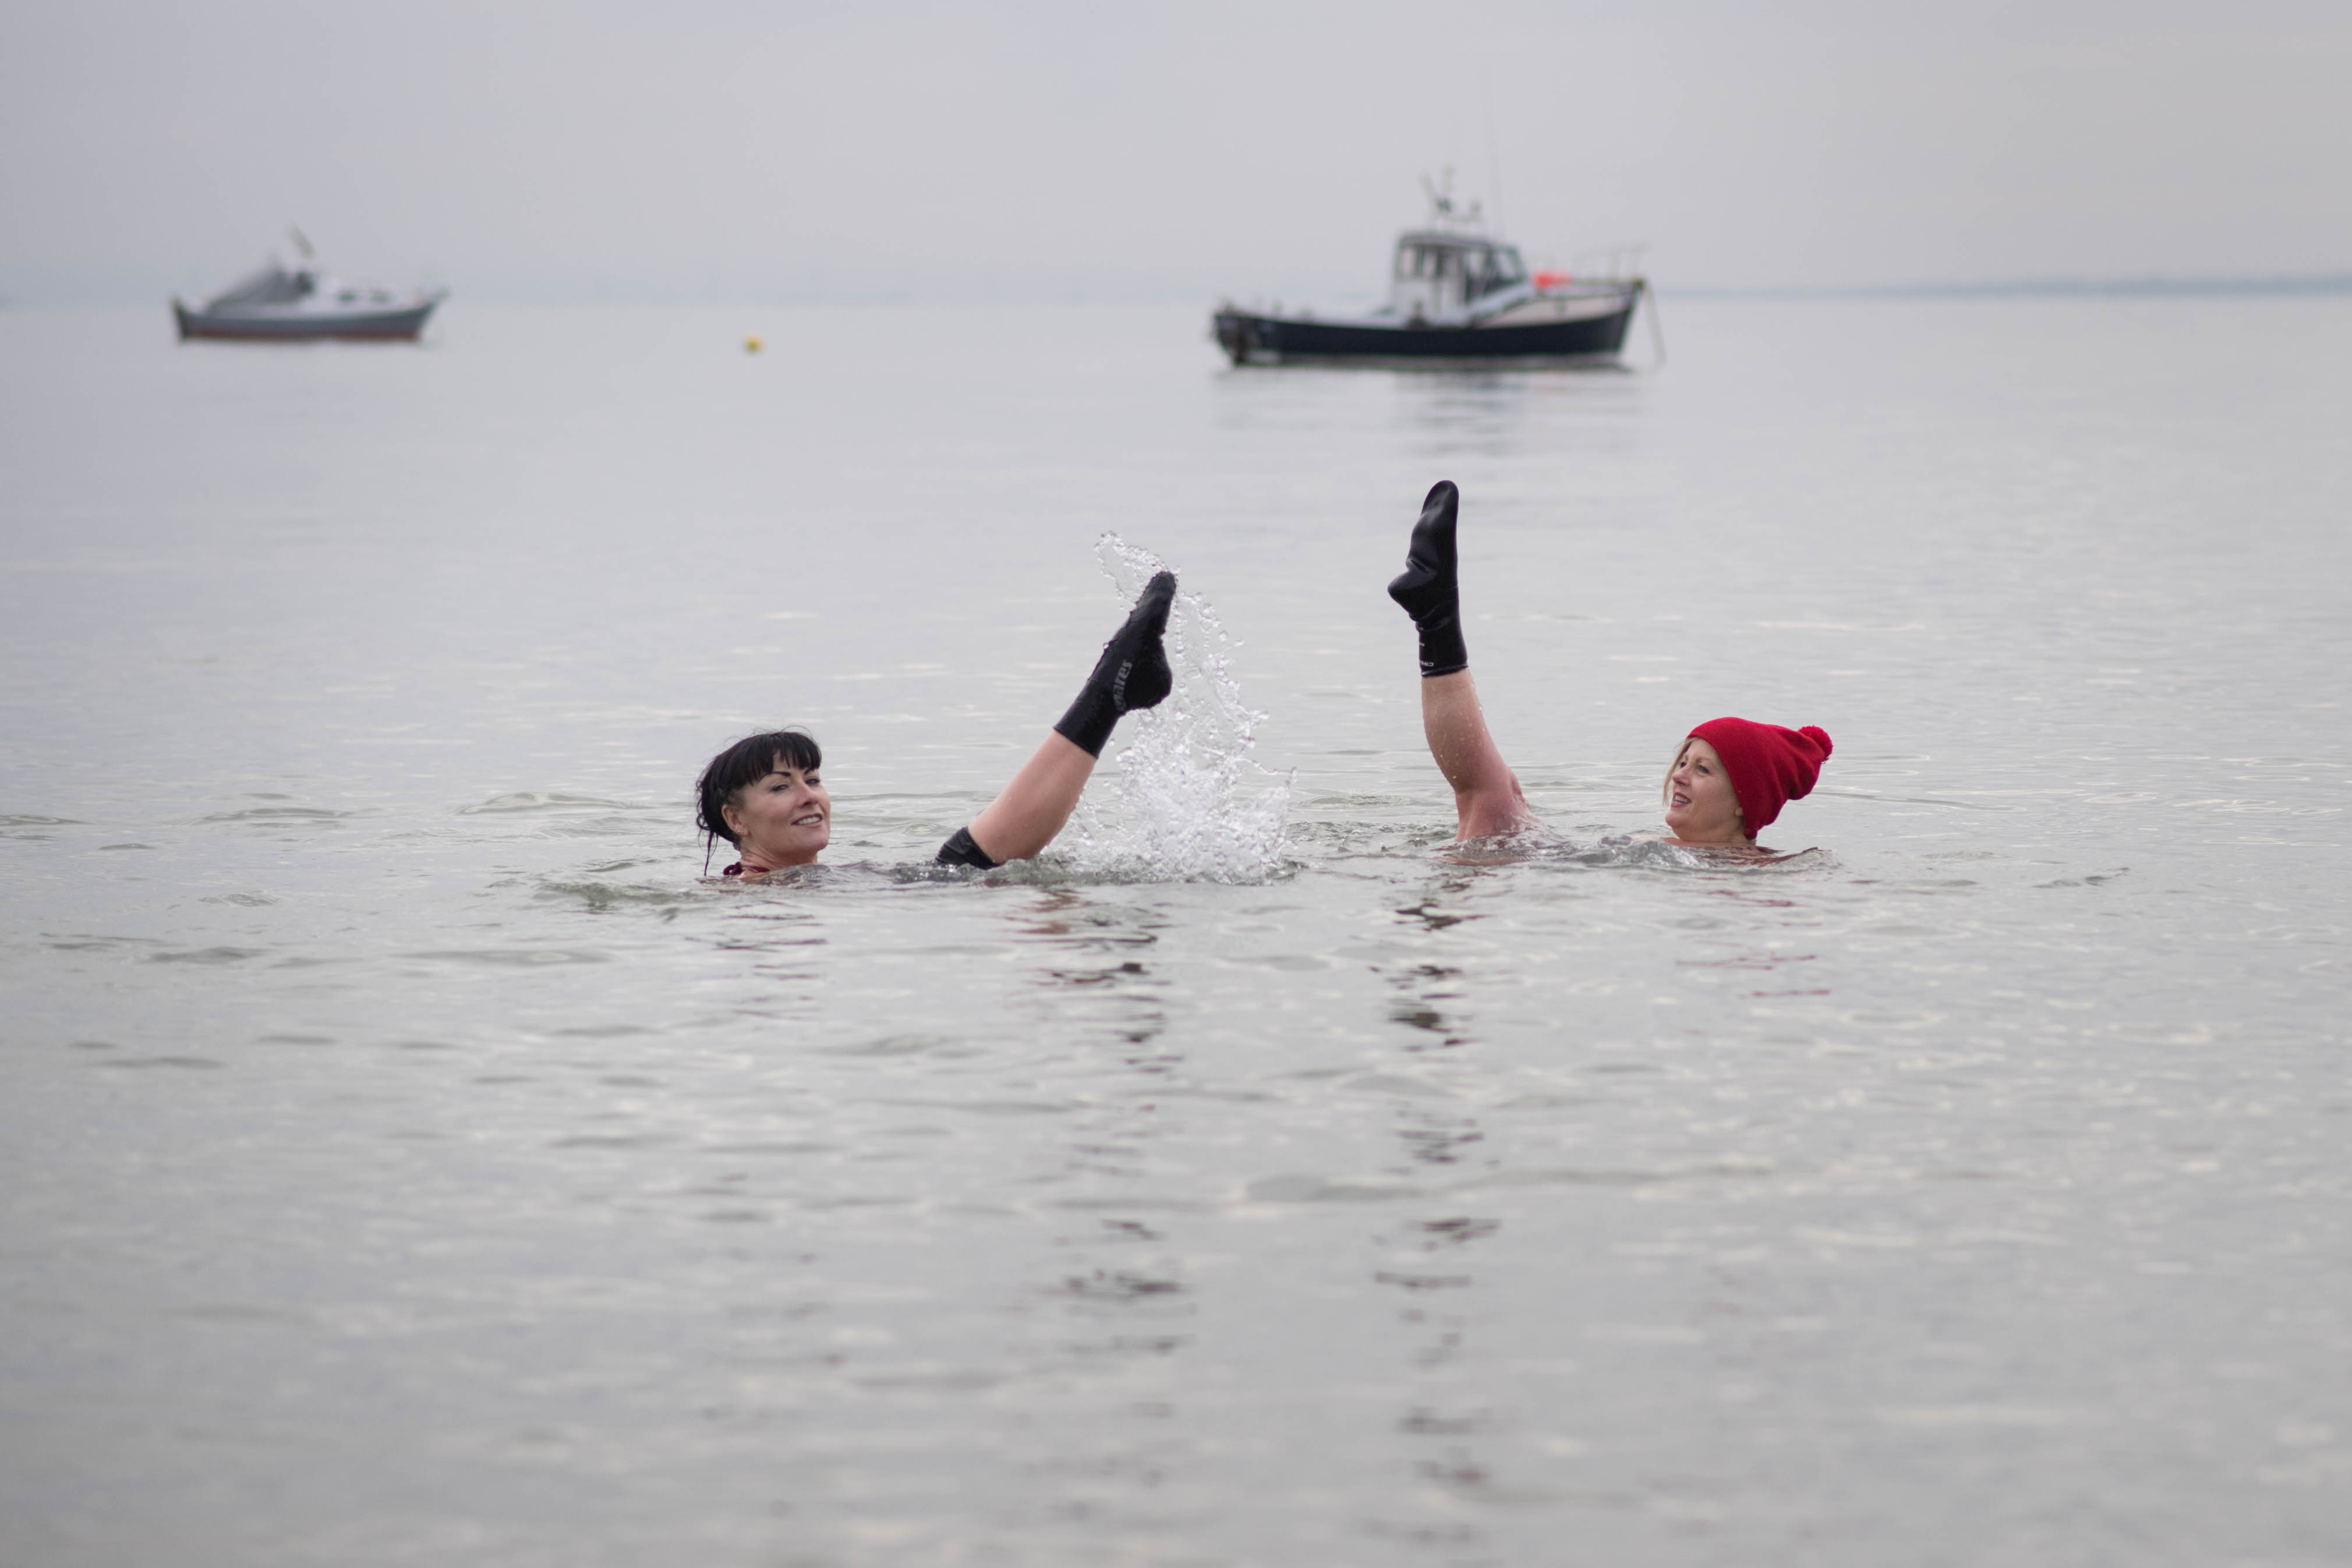 Swimmer at Thorpe Bay near Southend in Essex. Heavy snow and freezing rain is set to batter the UK this week, with warnings issued over potential power cuts and travel delays.